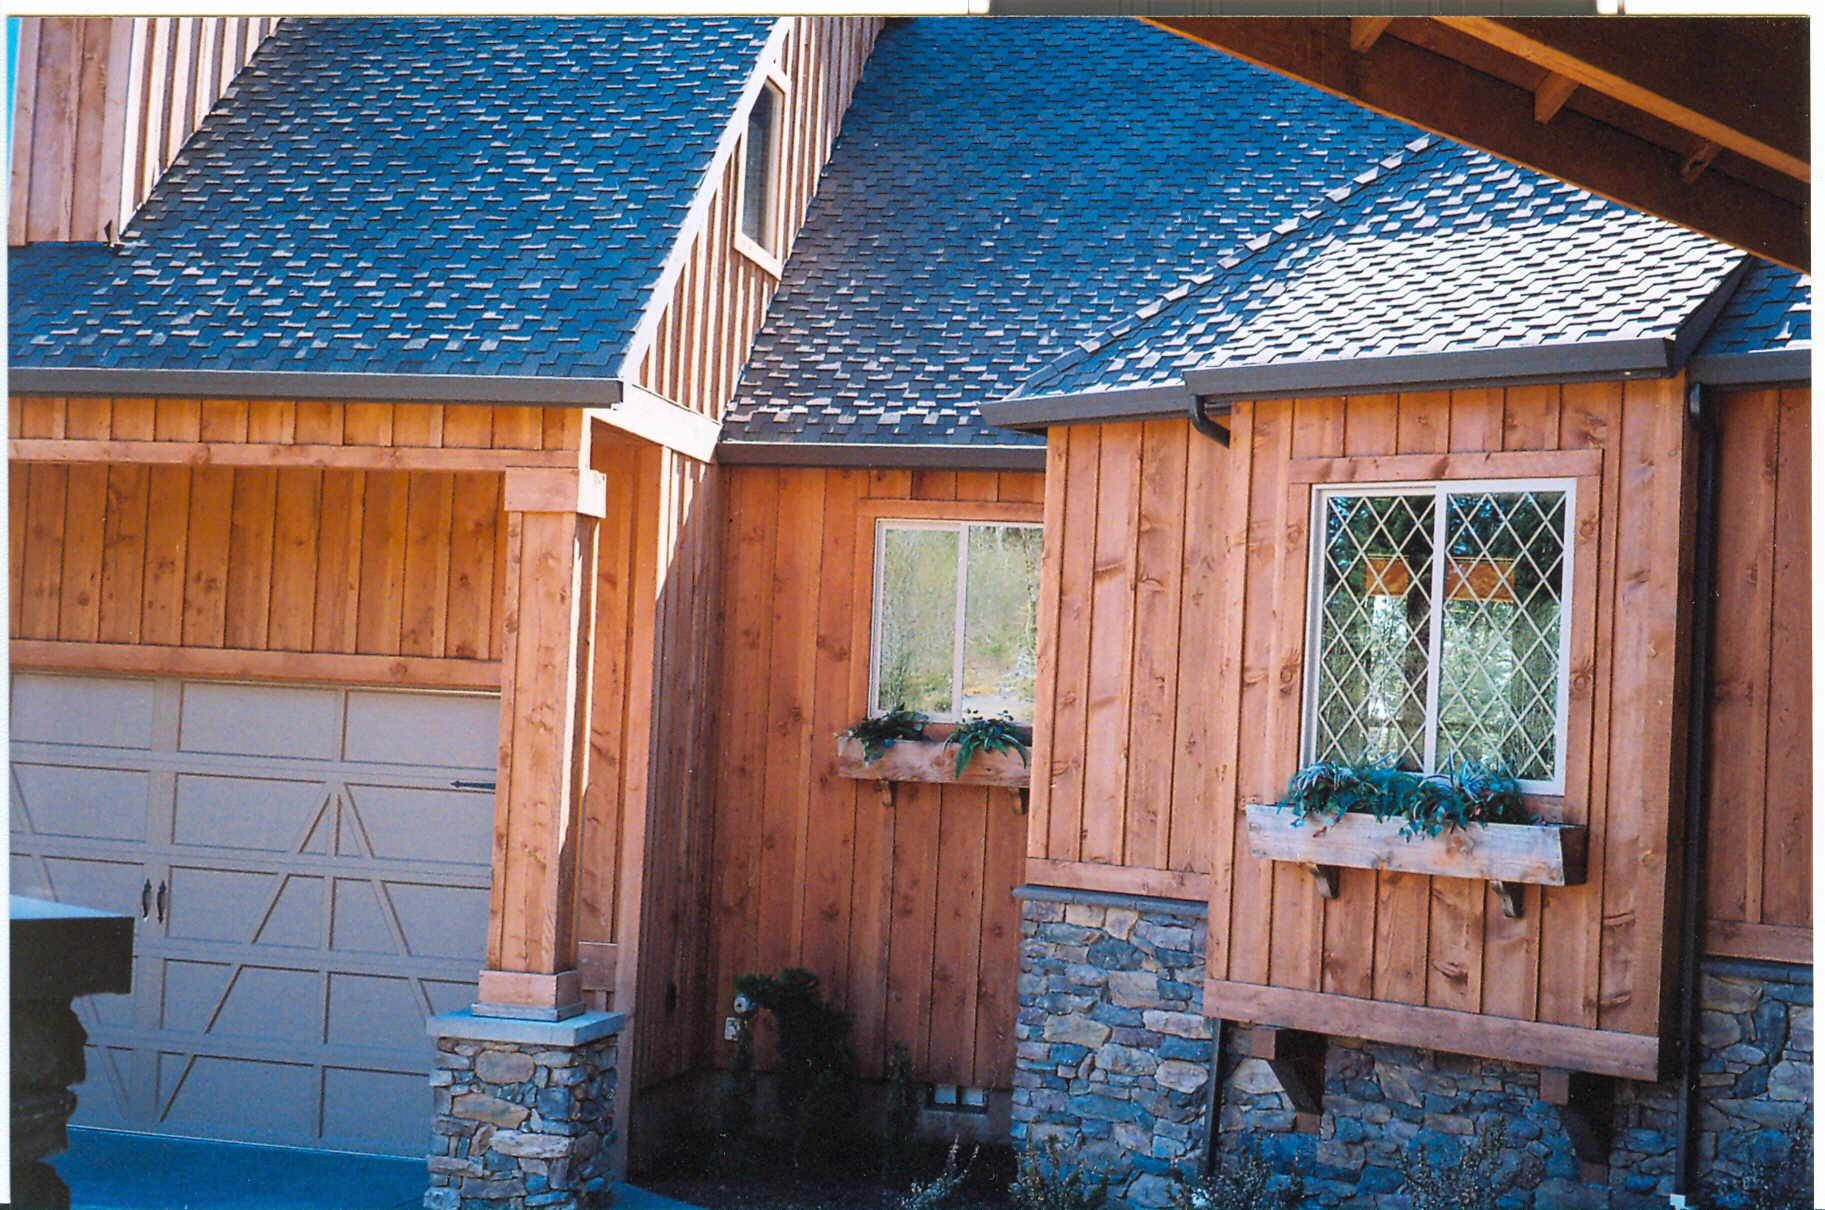 Click For Larger Image Of This Board And Batten Siding